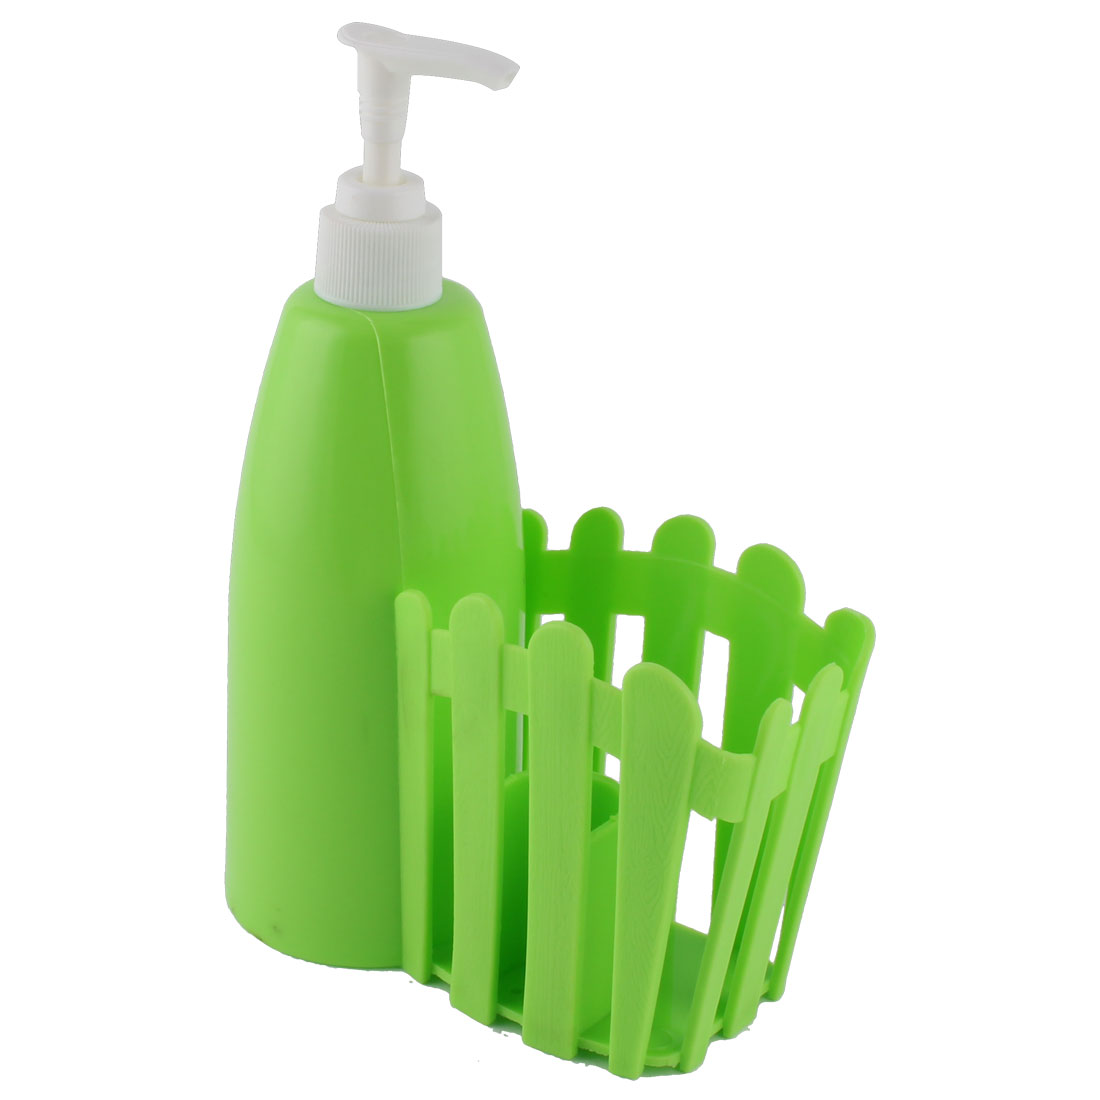 Home Bathroom Plastic Foaming Lotion Press Pump Bottle Dispenser Toothbrush Holder Green